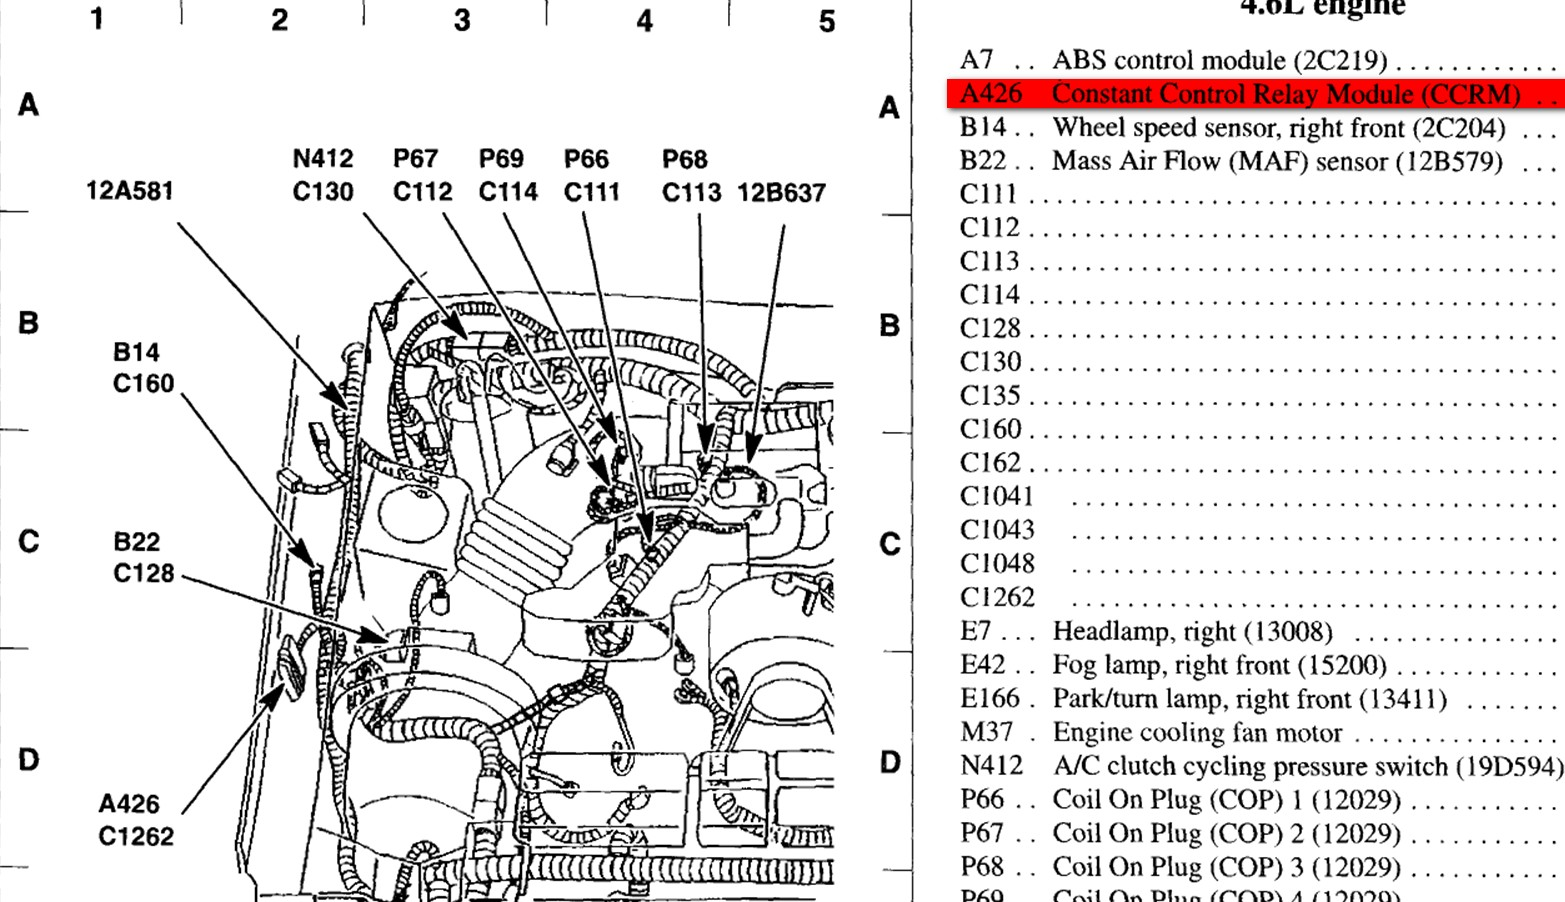 2002 ford mustang fuel pump wiring diagram YWYStGn ford mustang fuel pump relay location image details 2000 ford mustang gt fuel pump wiring diagram at readyjetset.co